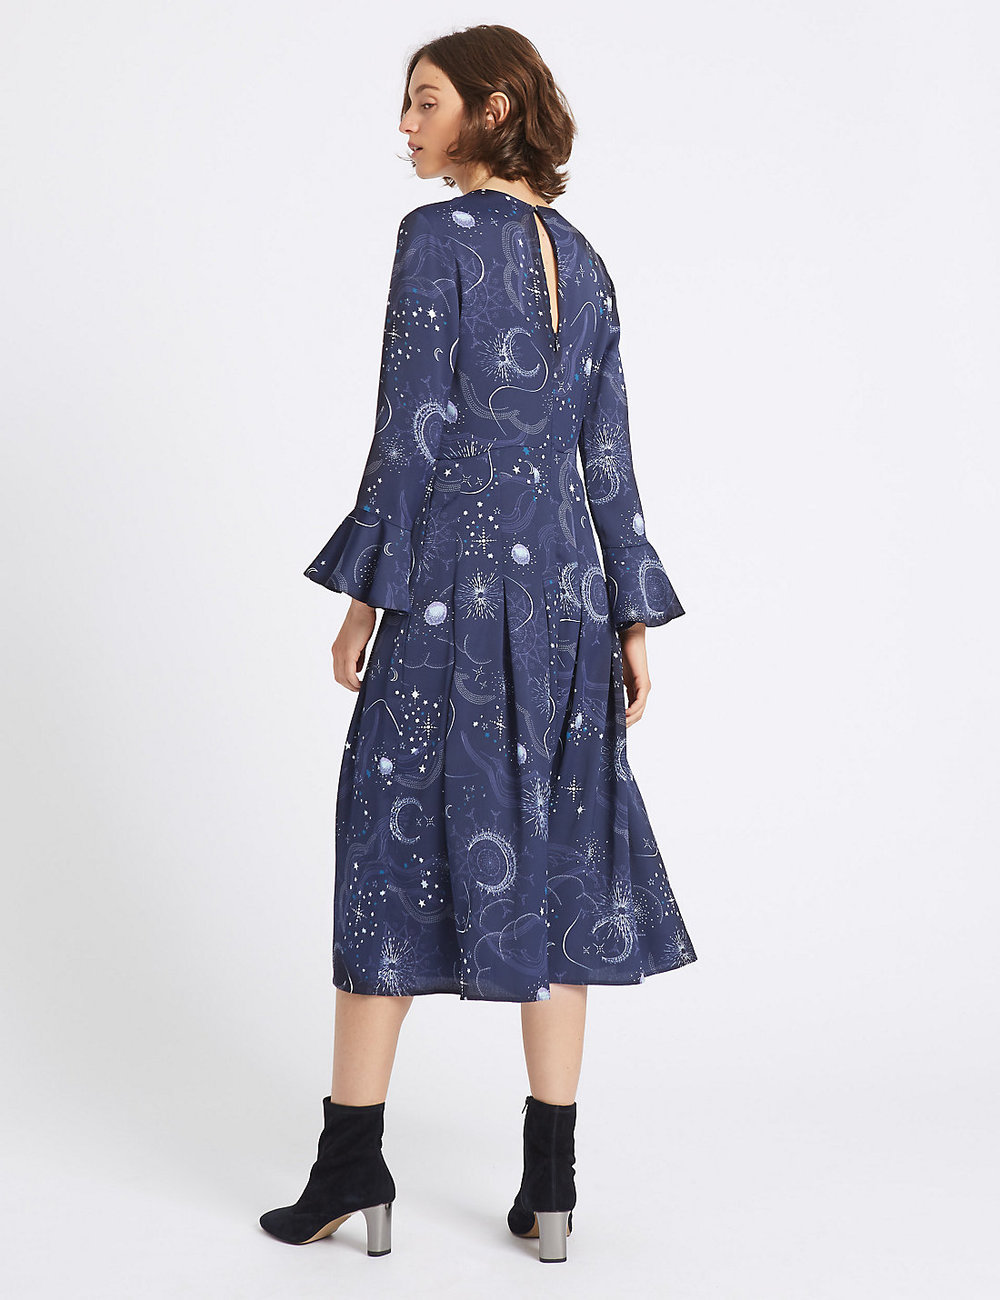 Constellation print long sleeve dress - Marks & spencers £45.00